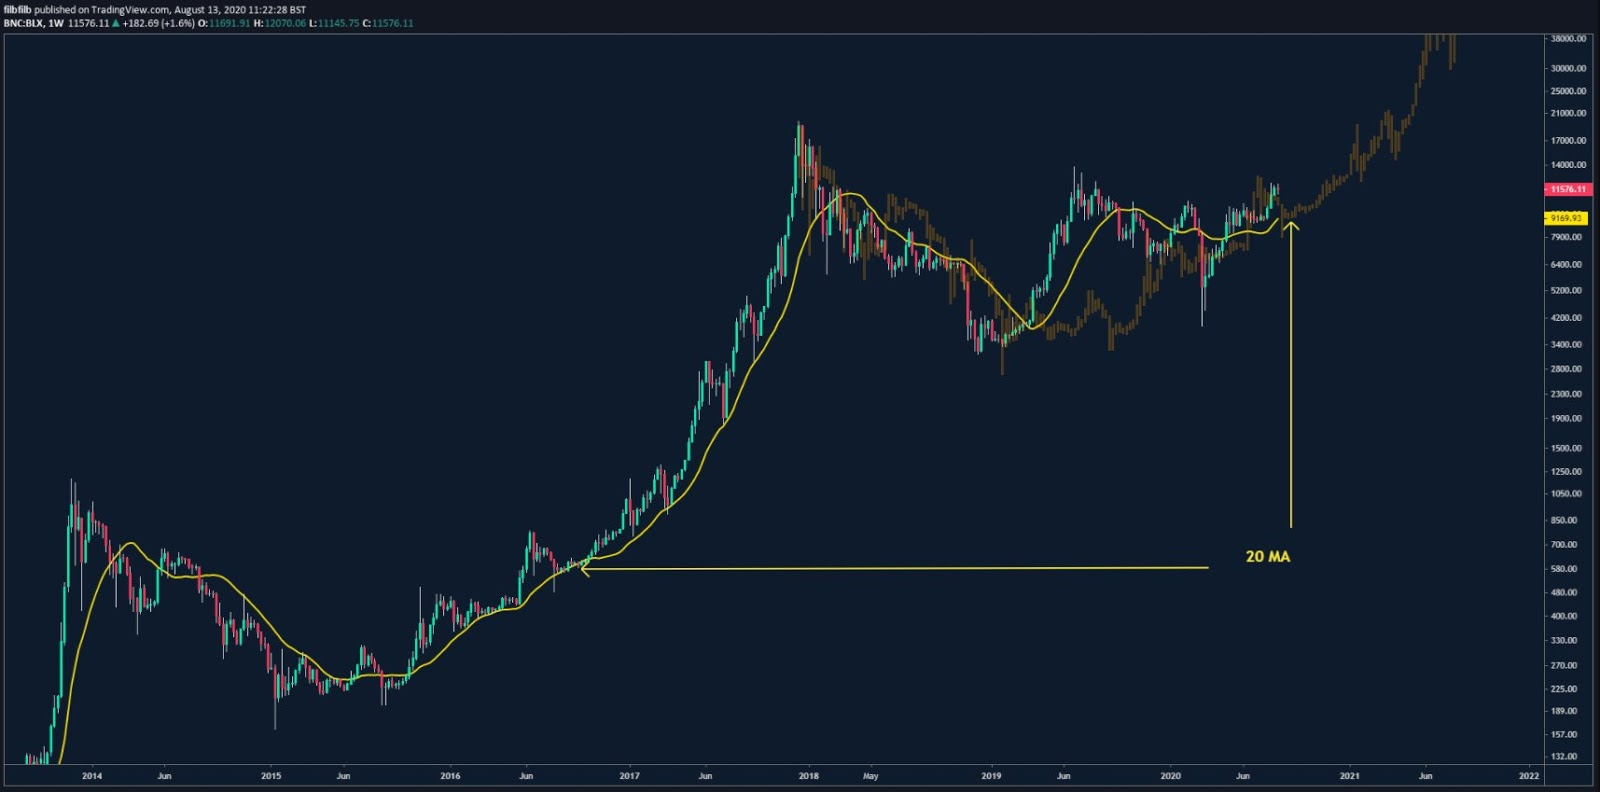 BTC/USD weekly chart with 20-week moving average highlighted